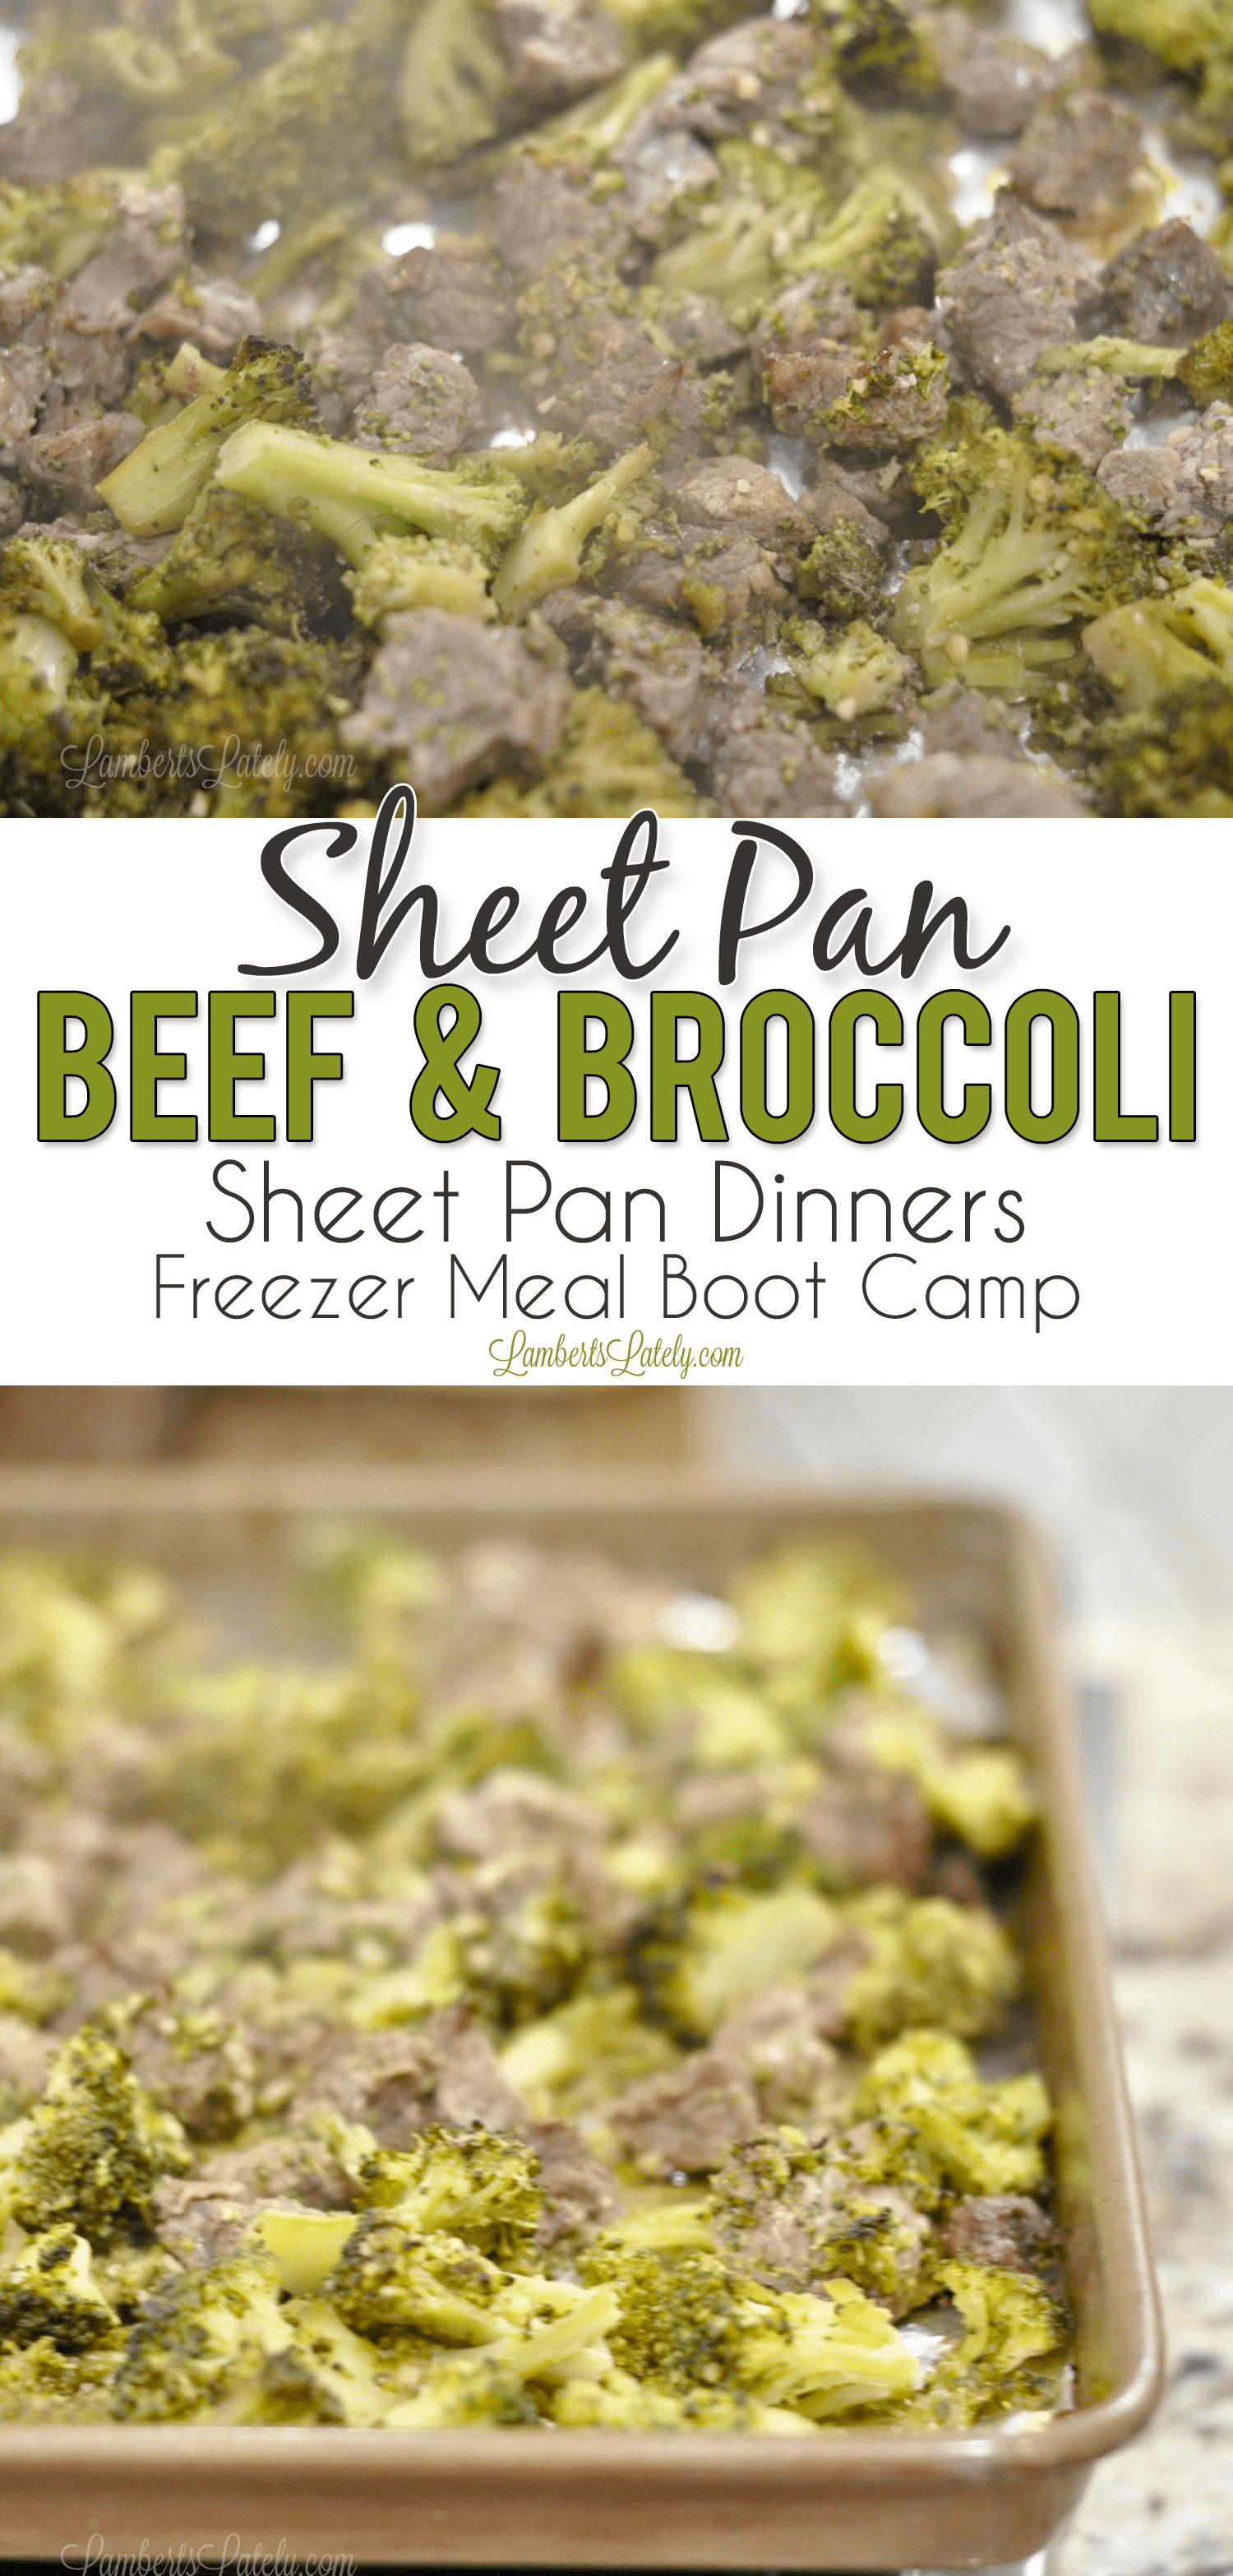 This sheet pan beef and broccoli combines pieces of steak and savory broccoli florets for a perfect flavor combination - goes perfectly over white rice! It's also a wonderful keto/low carb solution. Sheet pan dinners are such easy meals - they make for easy weeknight freezer meals too.